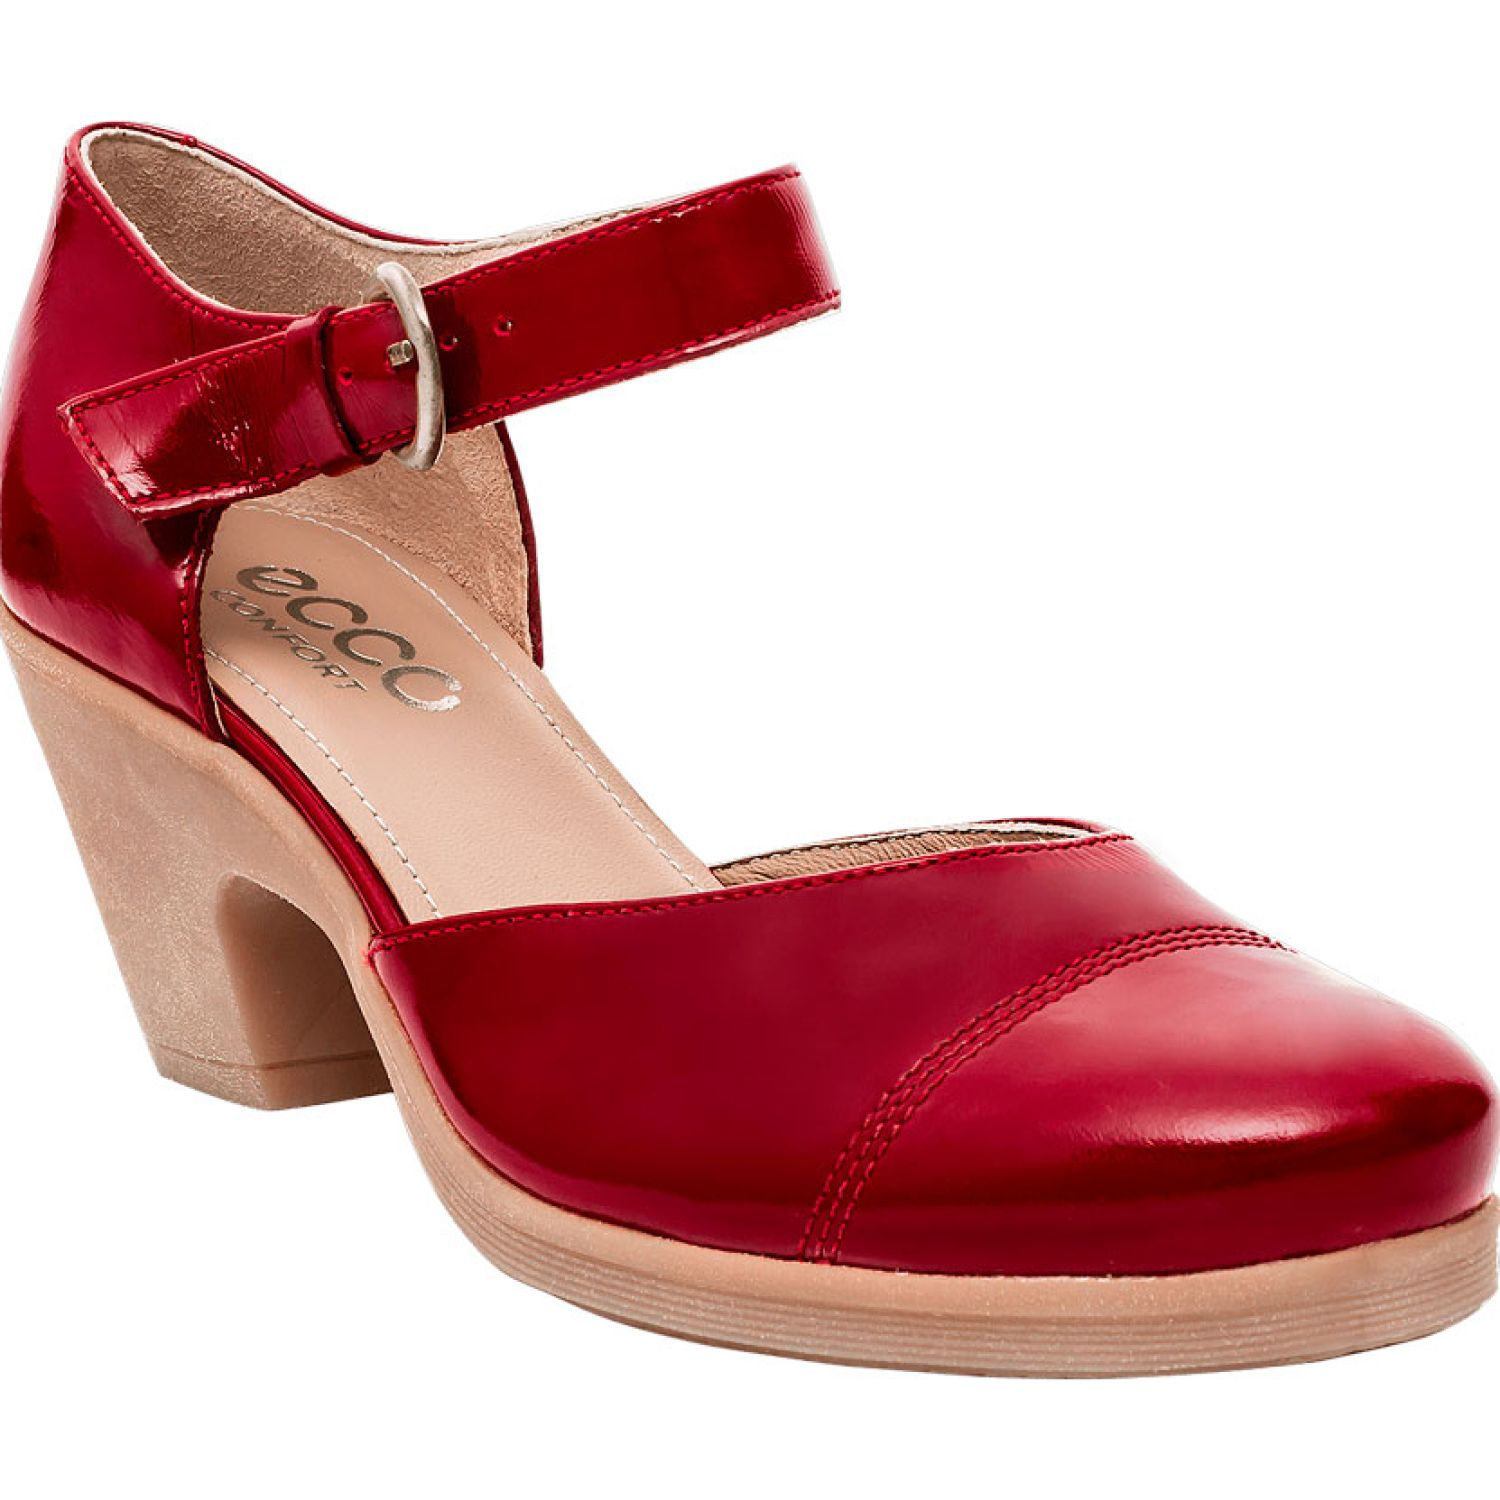 Ecco natalie42 Rojo Estiletos y Pumps